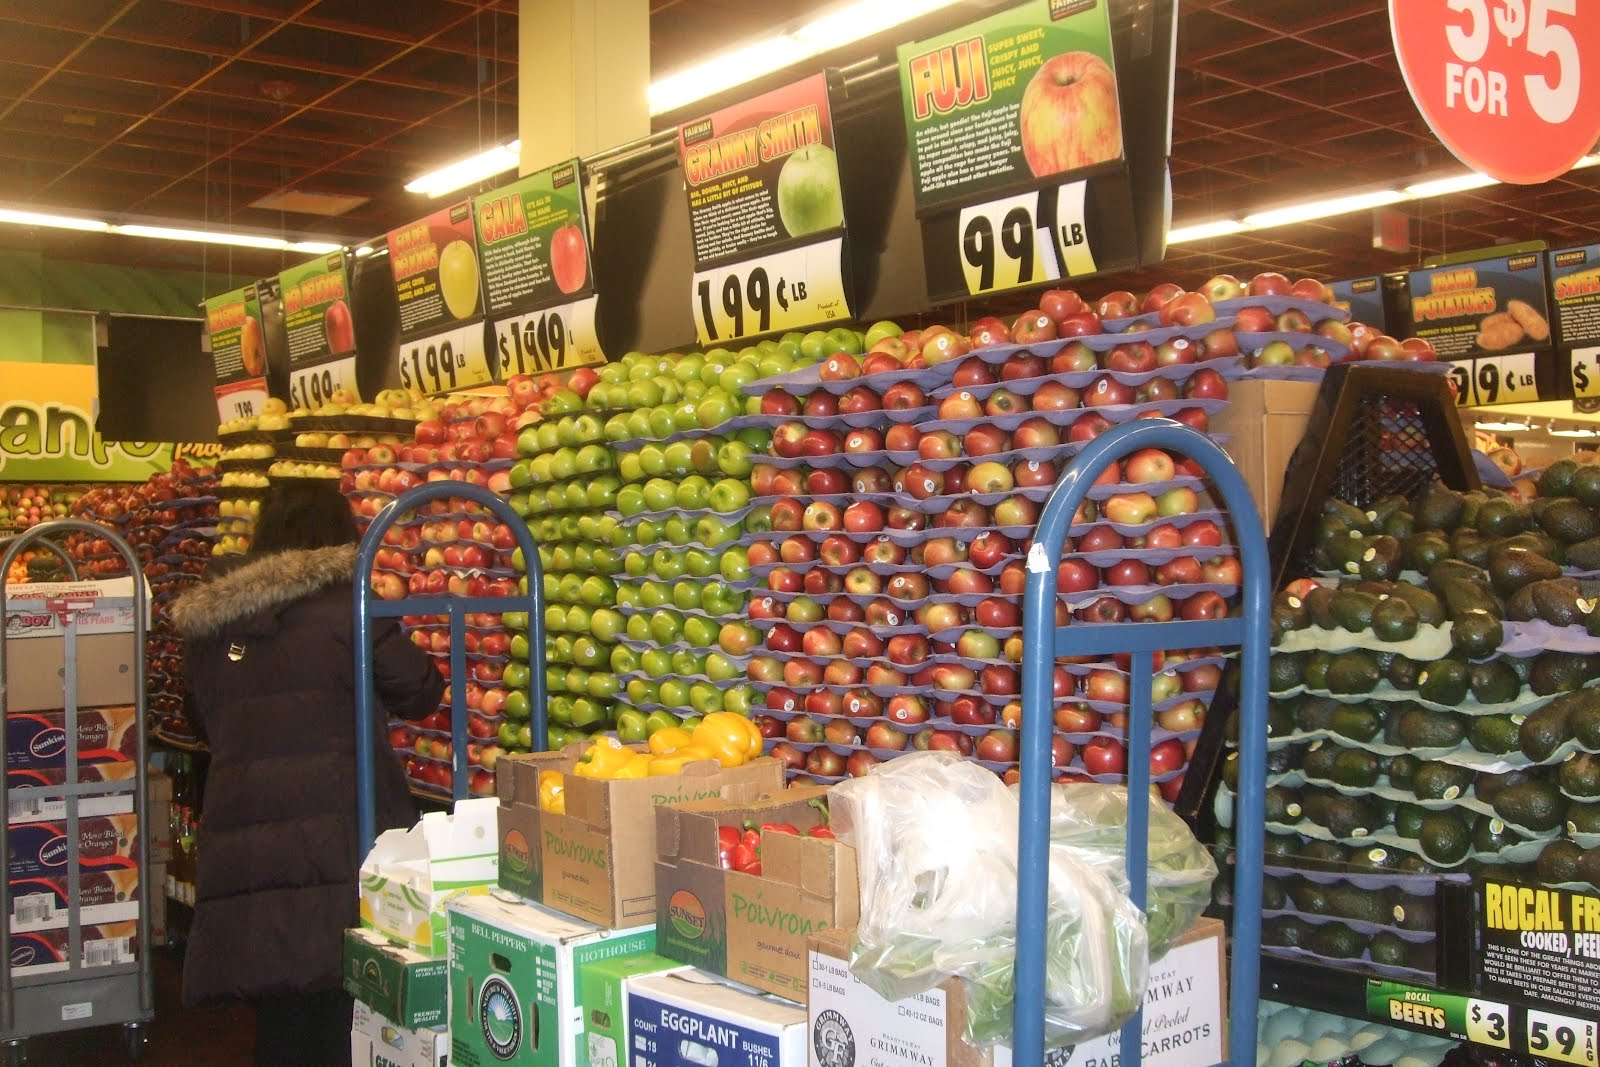 Fairway Shop Merle 39s Whirls Fairway Market Producing The Produce